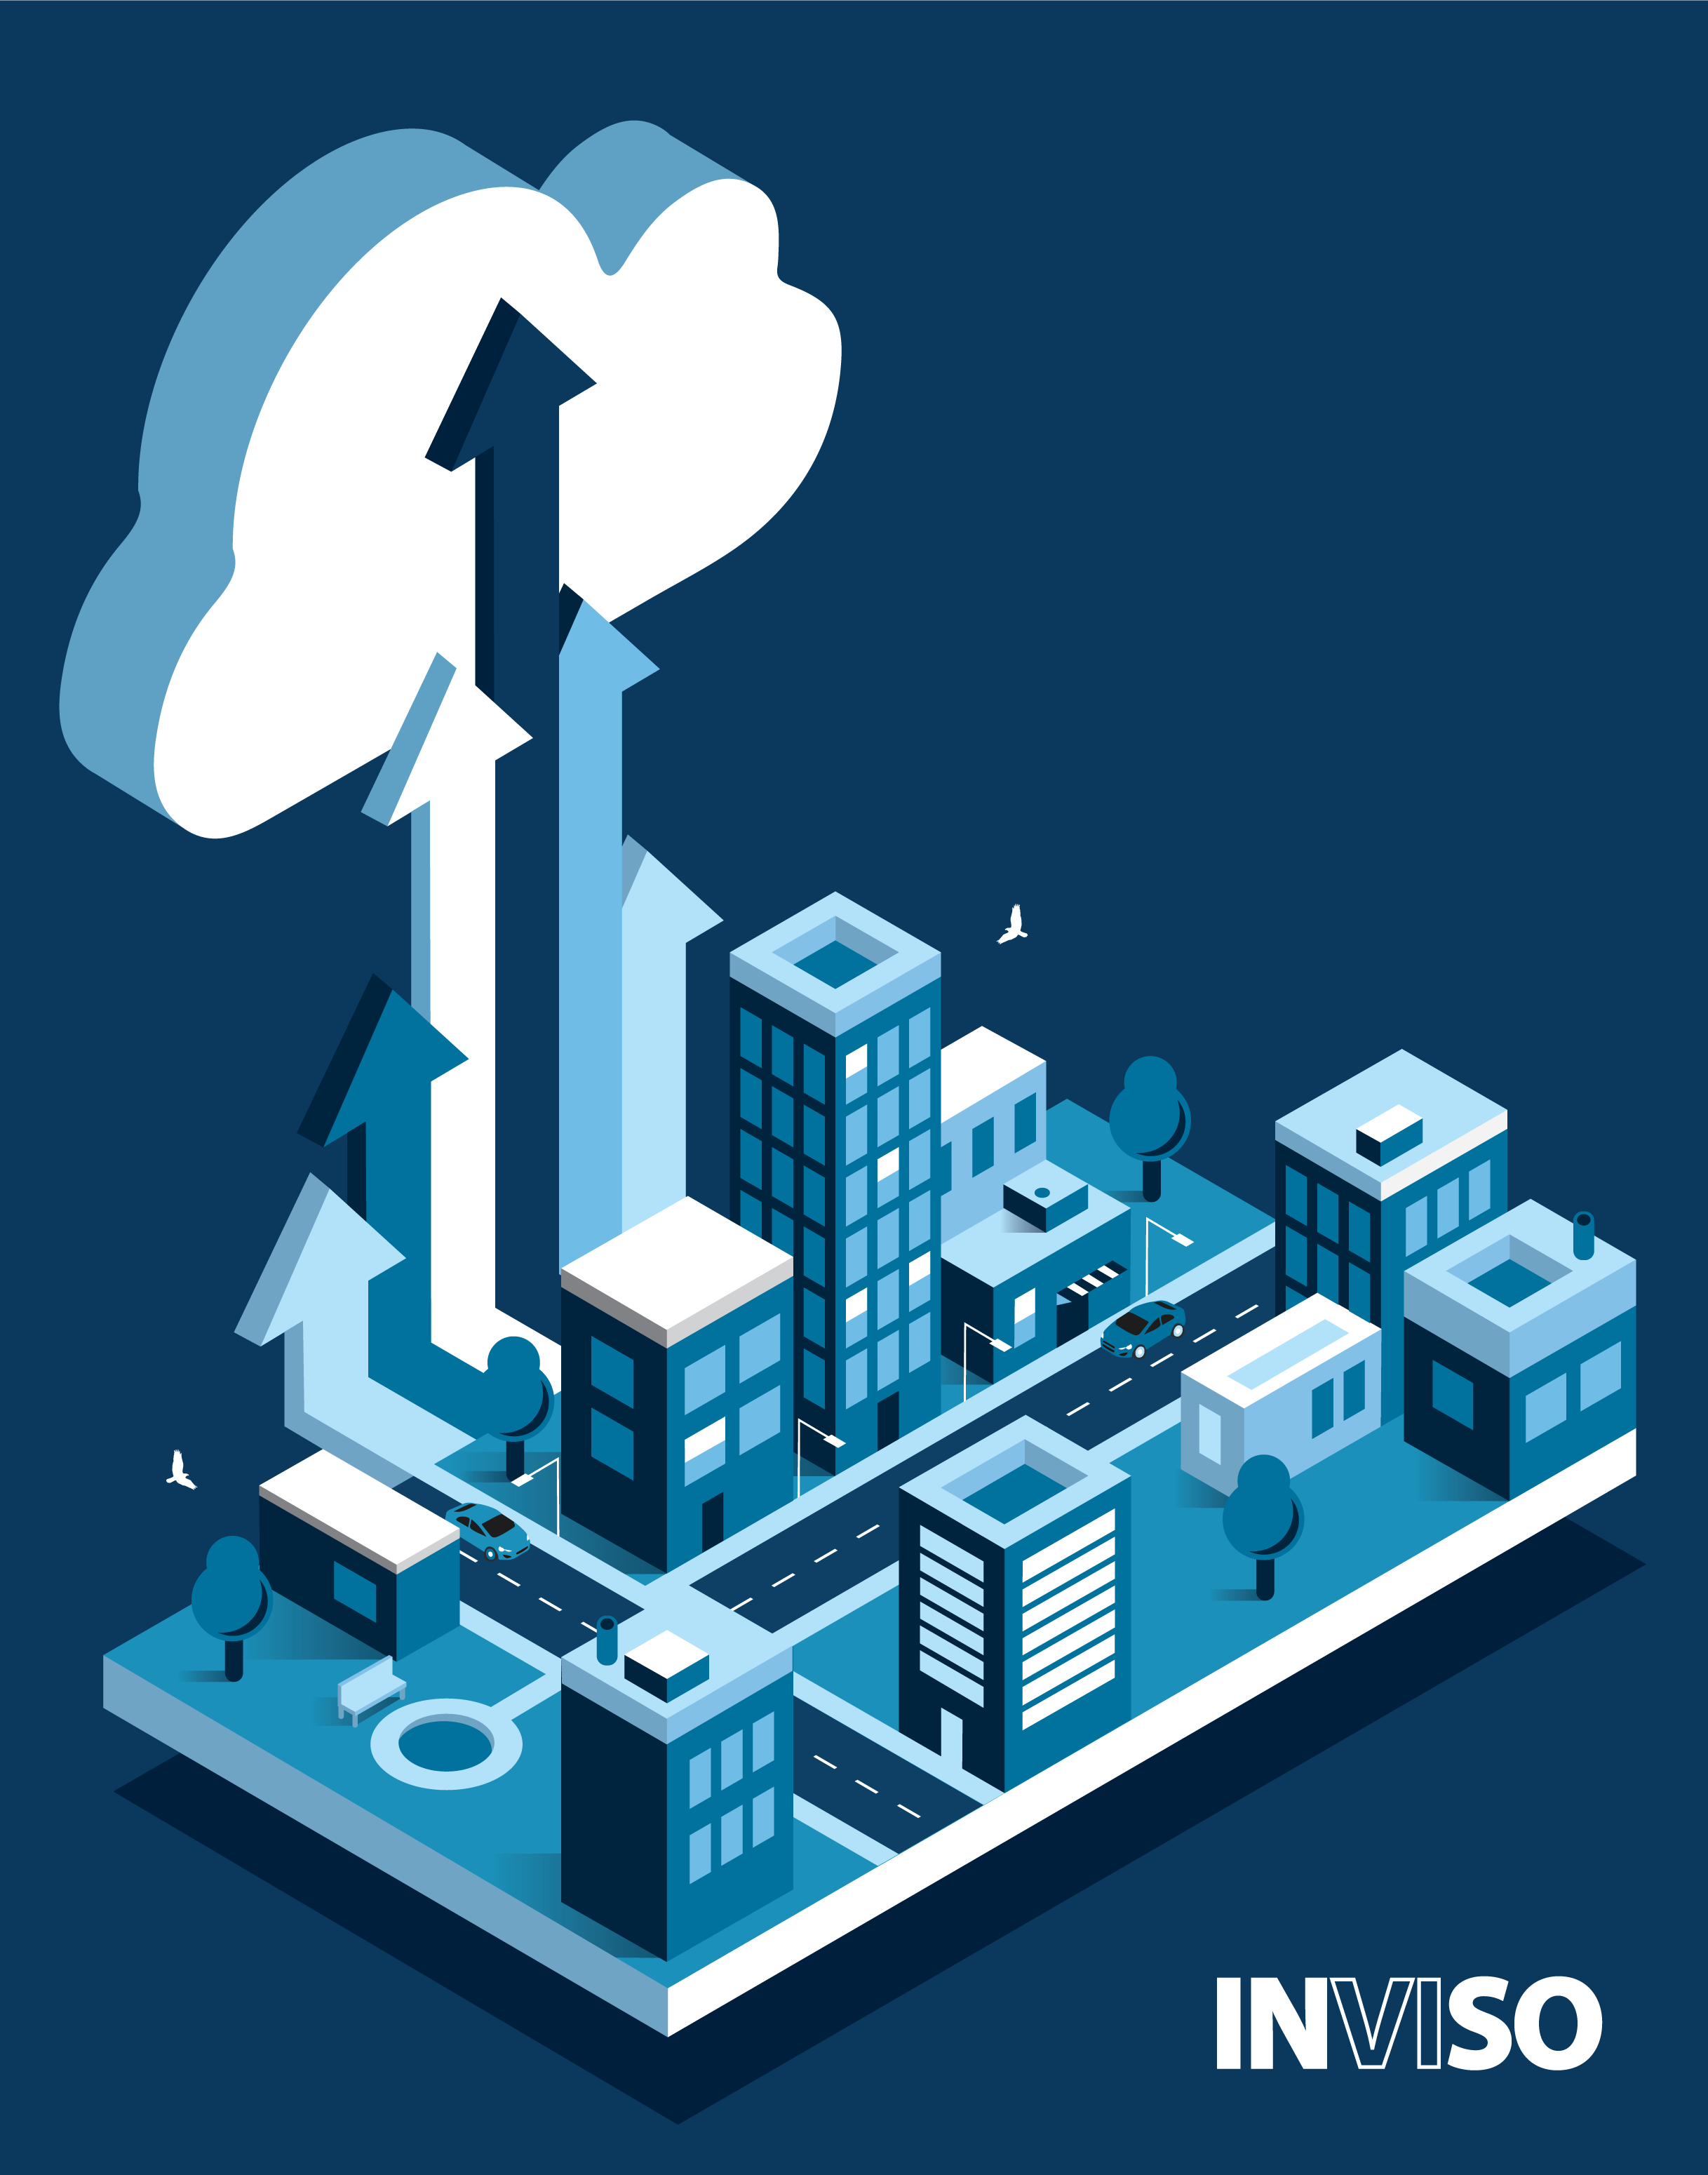 Cloud migration isometric city image